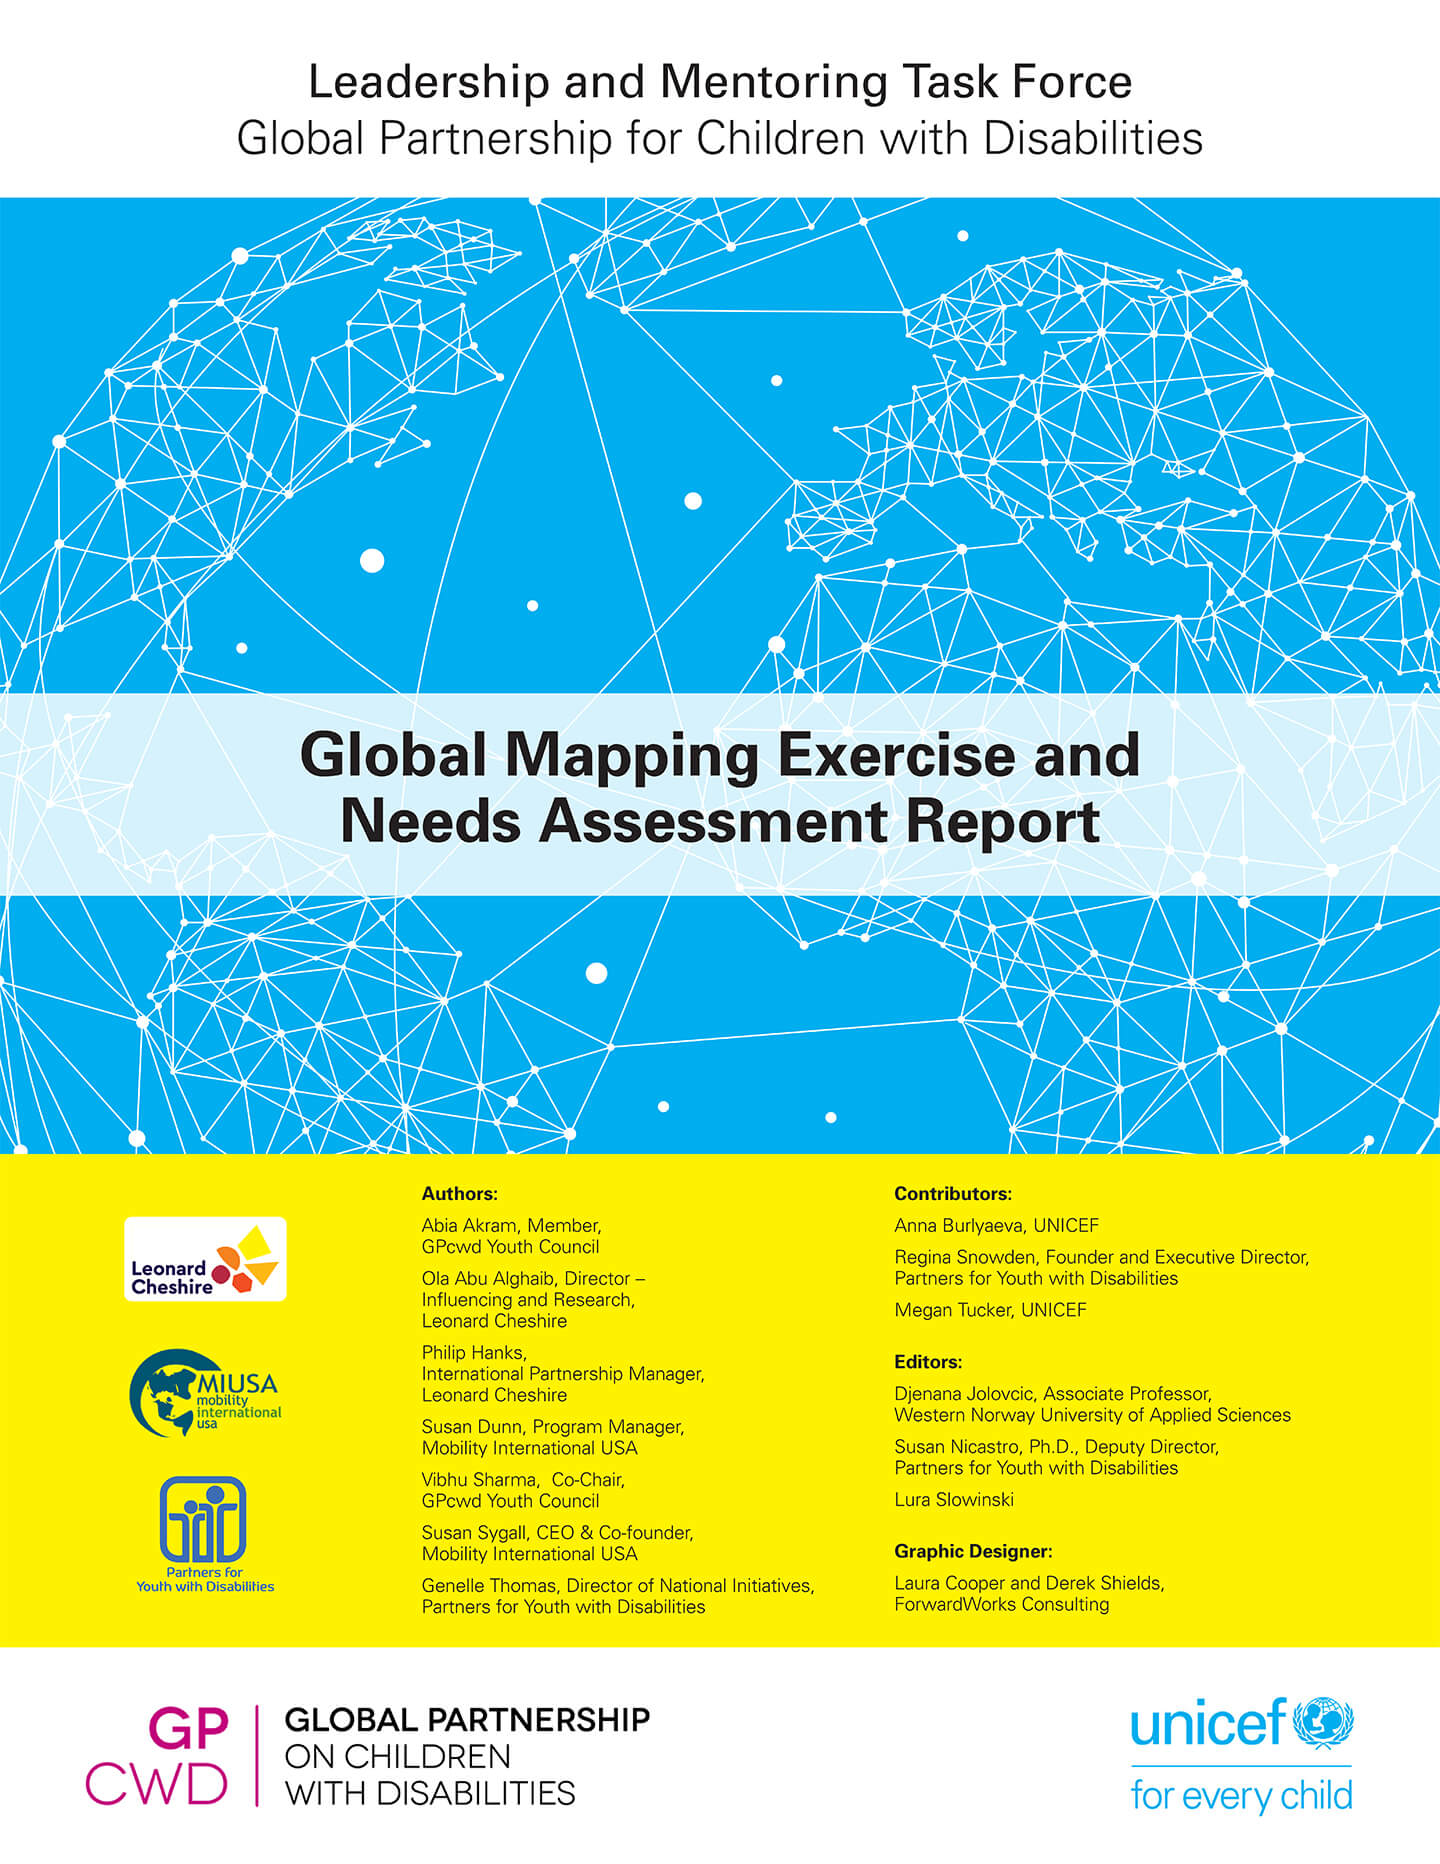 Global Partnership for Children with Disabilities: Global Mapping Exercise and Needs Assessment Report